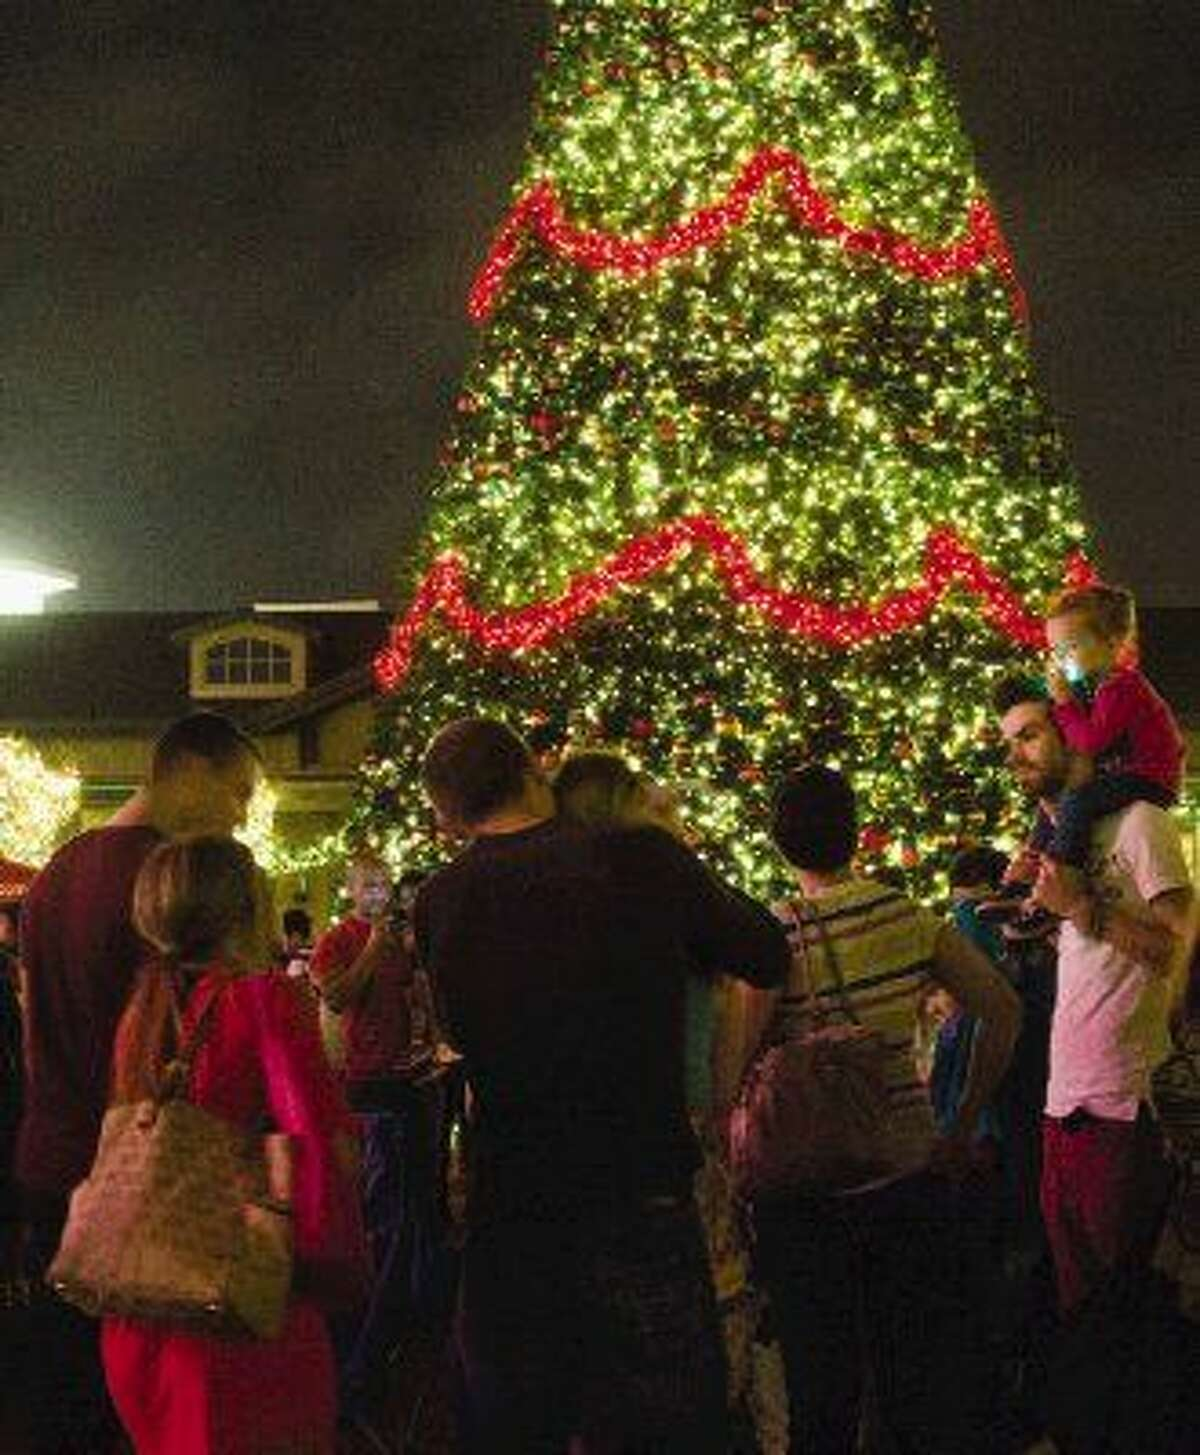 In this 2013 file photo, families gaze at a 70-foot Christmas tree during a tree lighting ceremony at Market Street in The Woodlands.